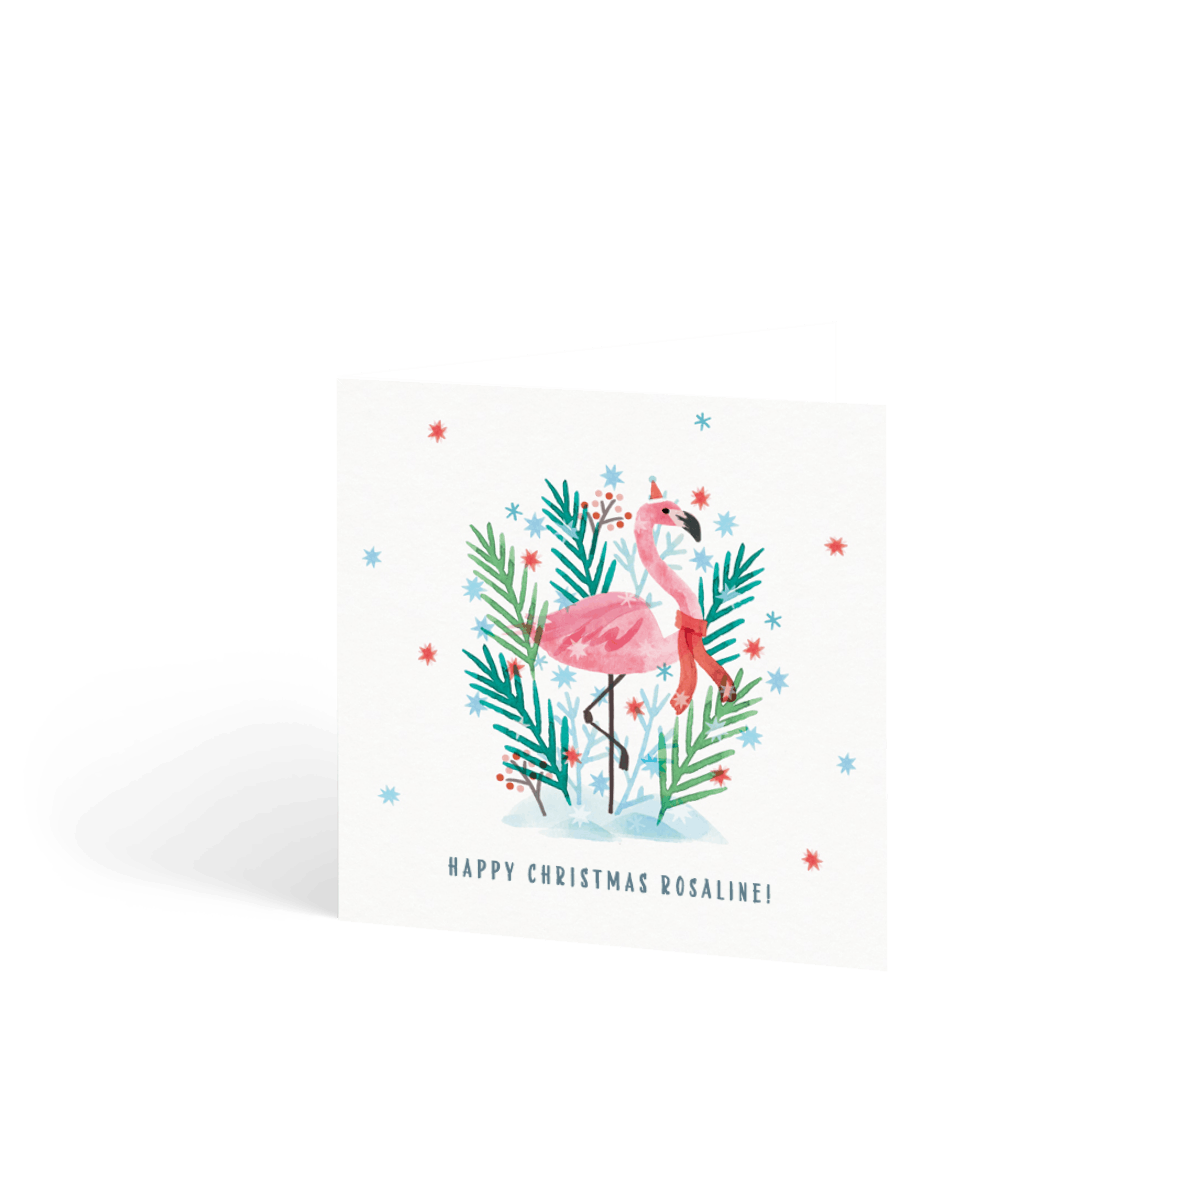 Https%3a%2f%2fwww.papier.com%2fproduct image%2f41737%2f16%2fchristmas flamingo 10634 front 1532518482.png?ixlib=rb 1.1